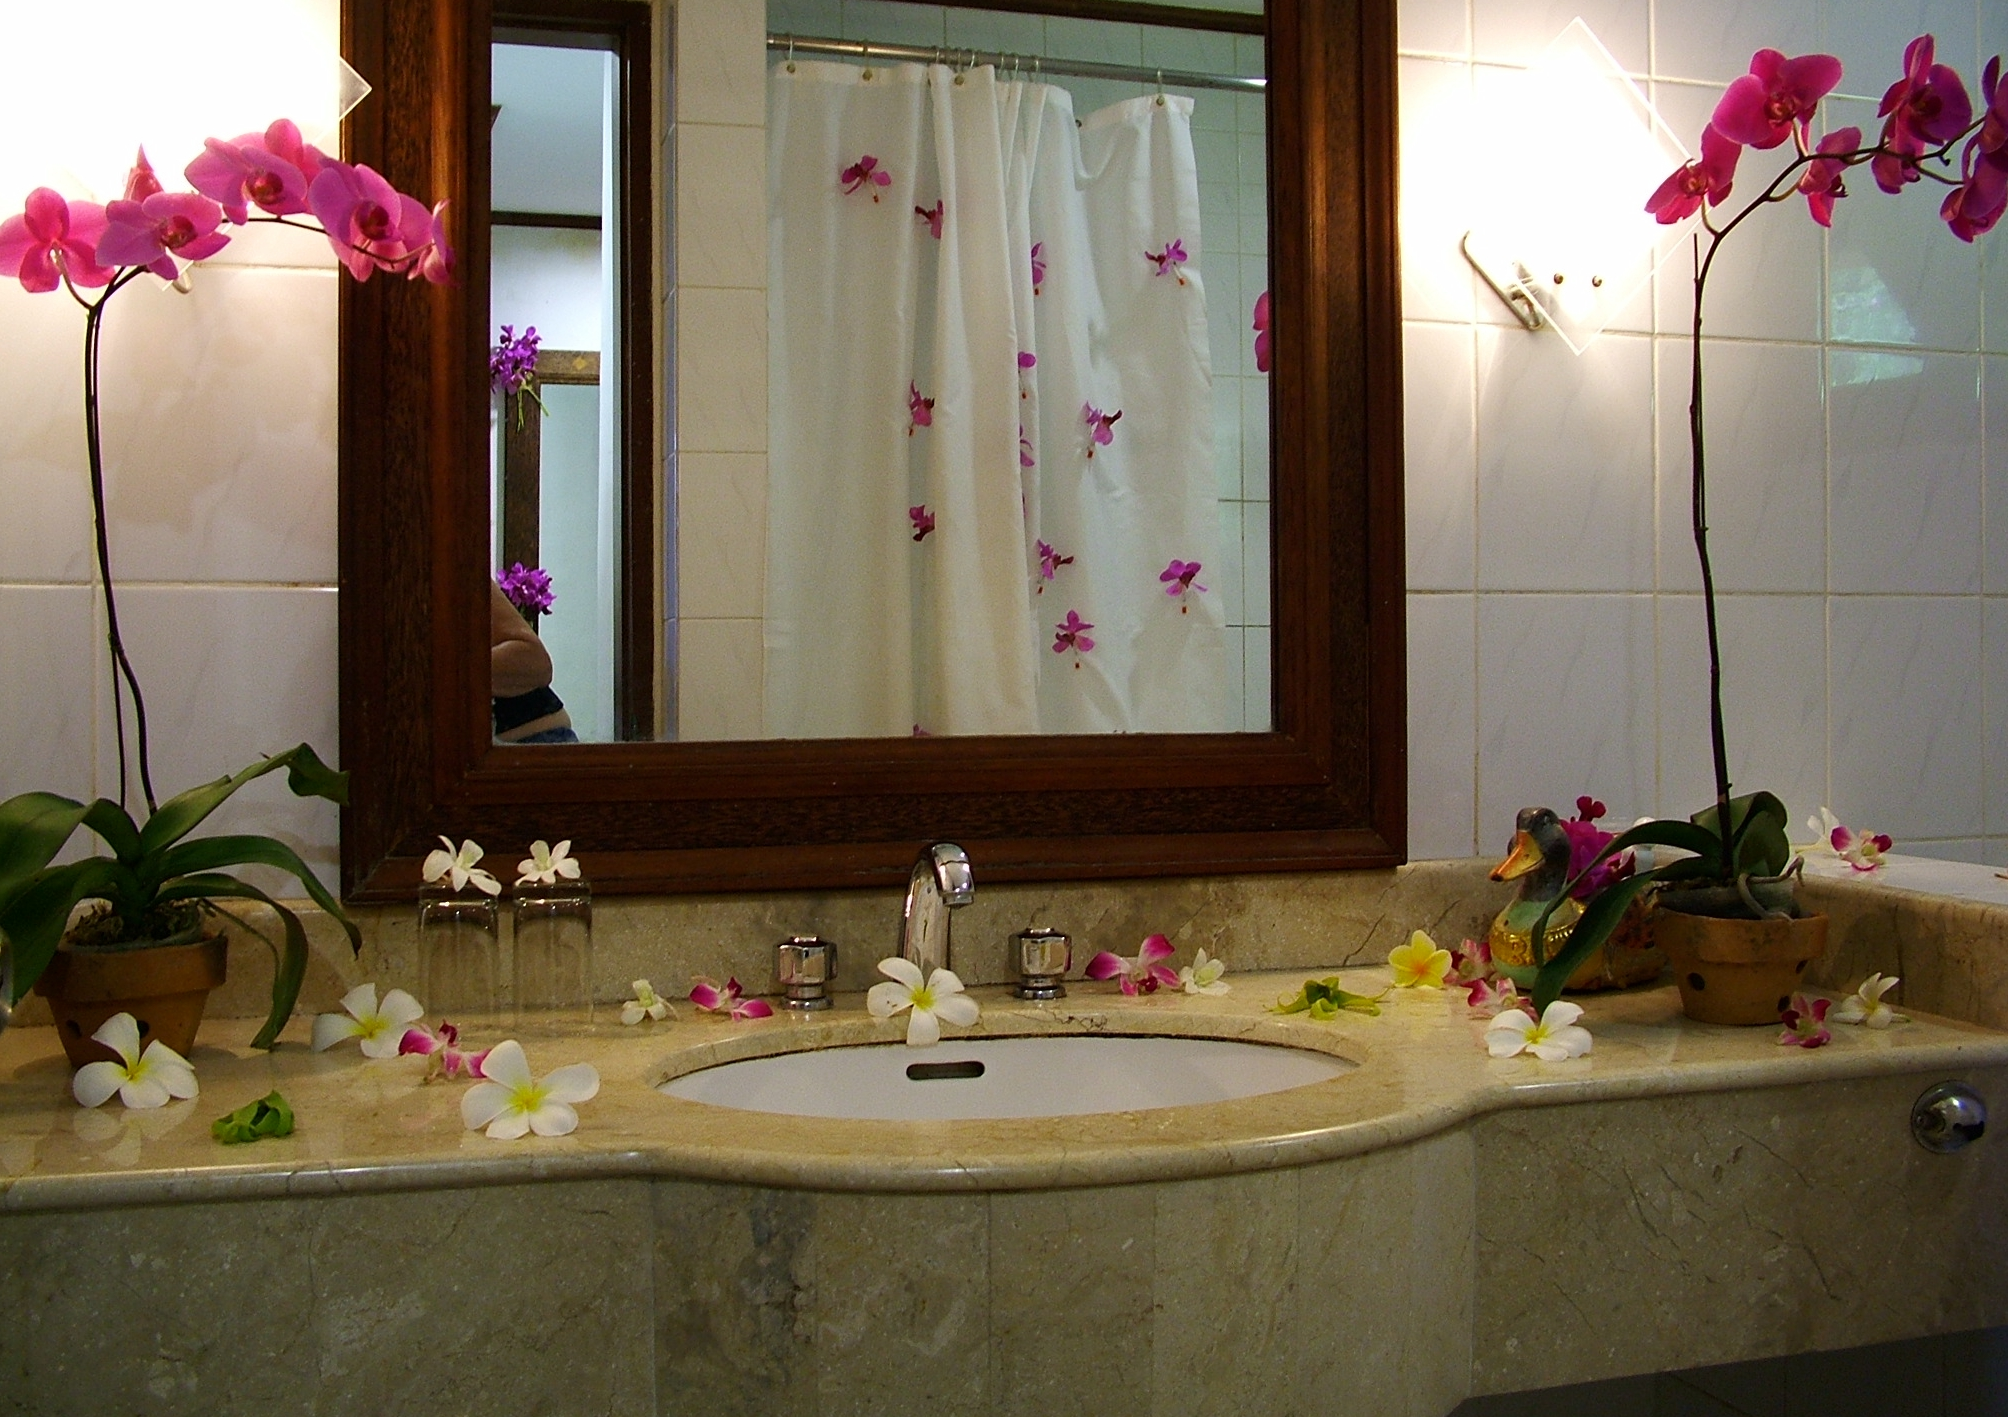 Intercontinent Gorgeous Bathroom Decor To Make Your Bathroom More Beautiful Homeynice